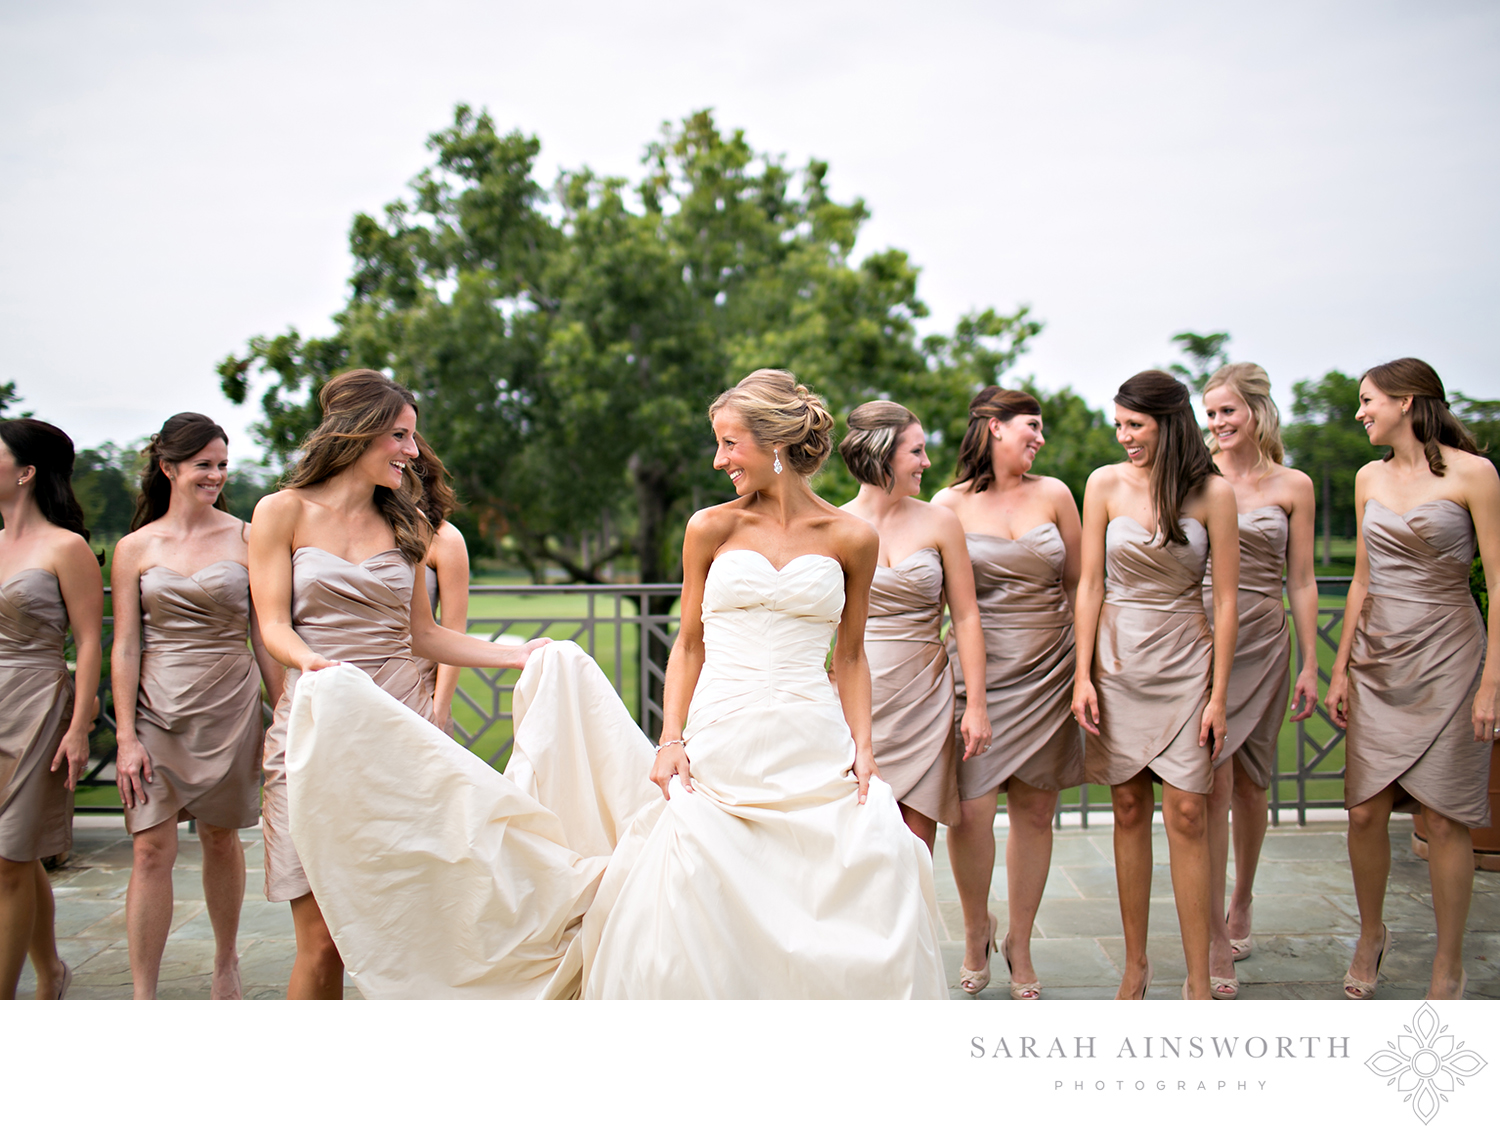 39_river-oaks-country-club-houston-country-club-wedding-upscale-luxury-houston-wedding_02.jpg